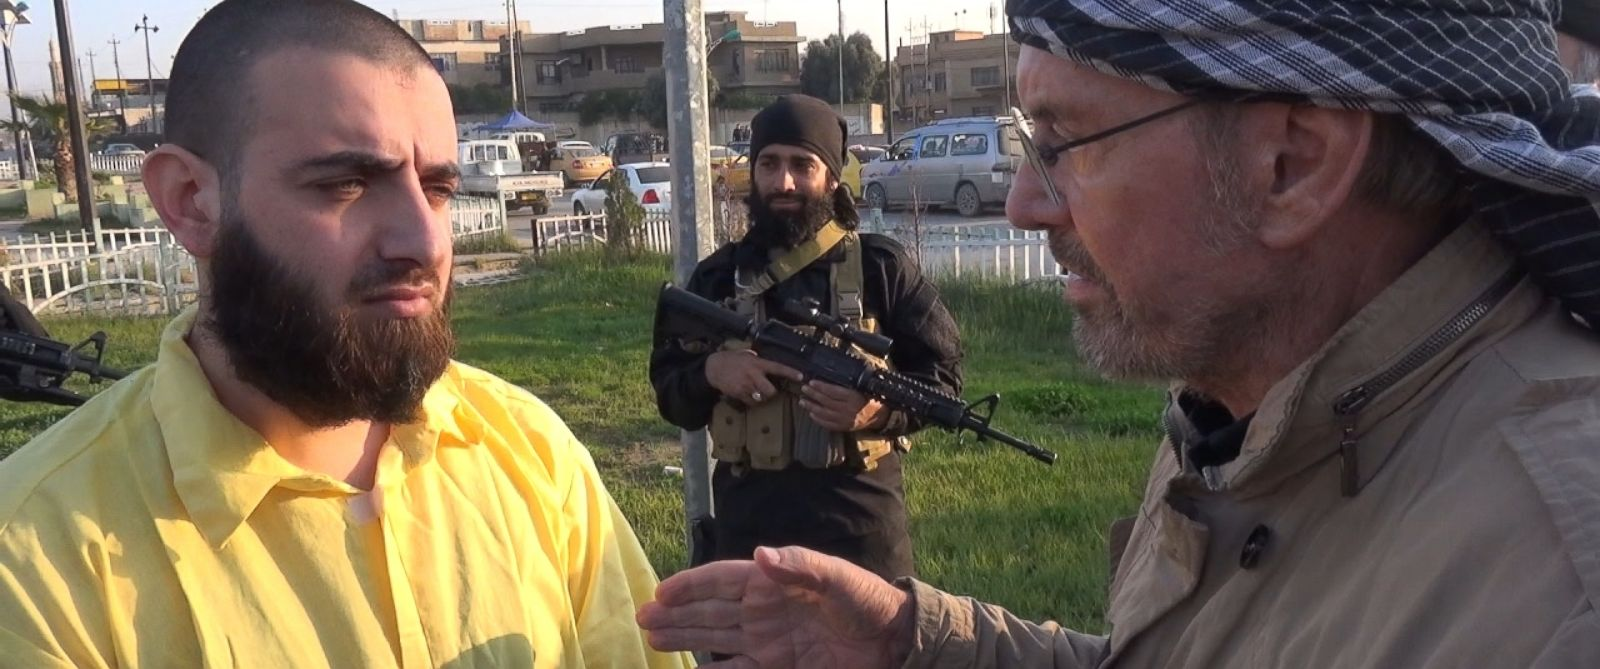 PHOTO: German journalist Jürgen Todenhöfer, right, seen speaking to a Kurdish prisoner, spent time with ISIS in Iraq and Syria.